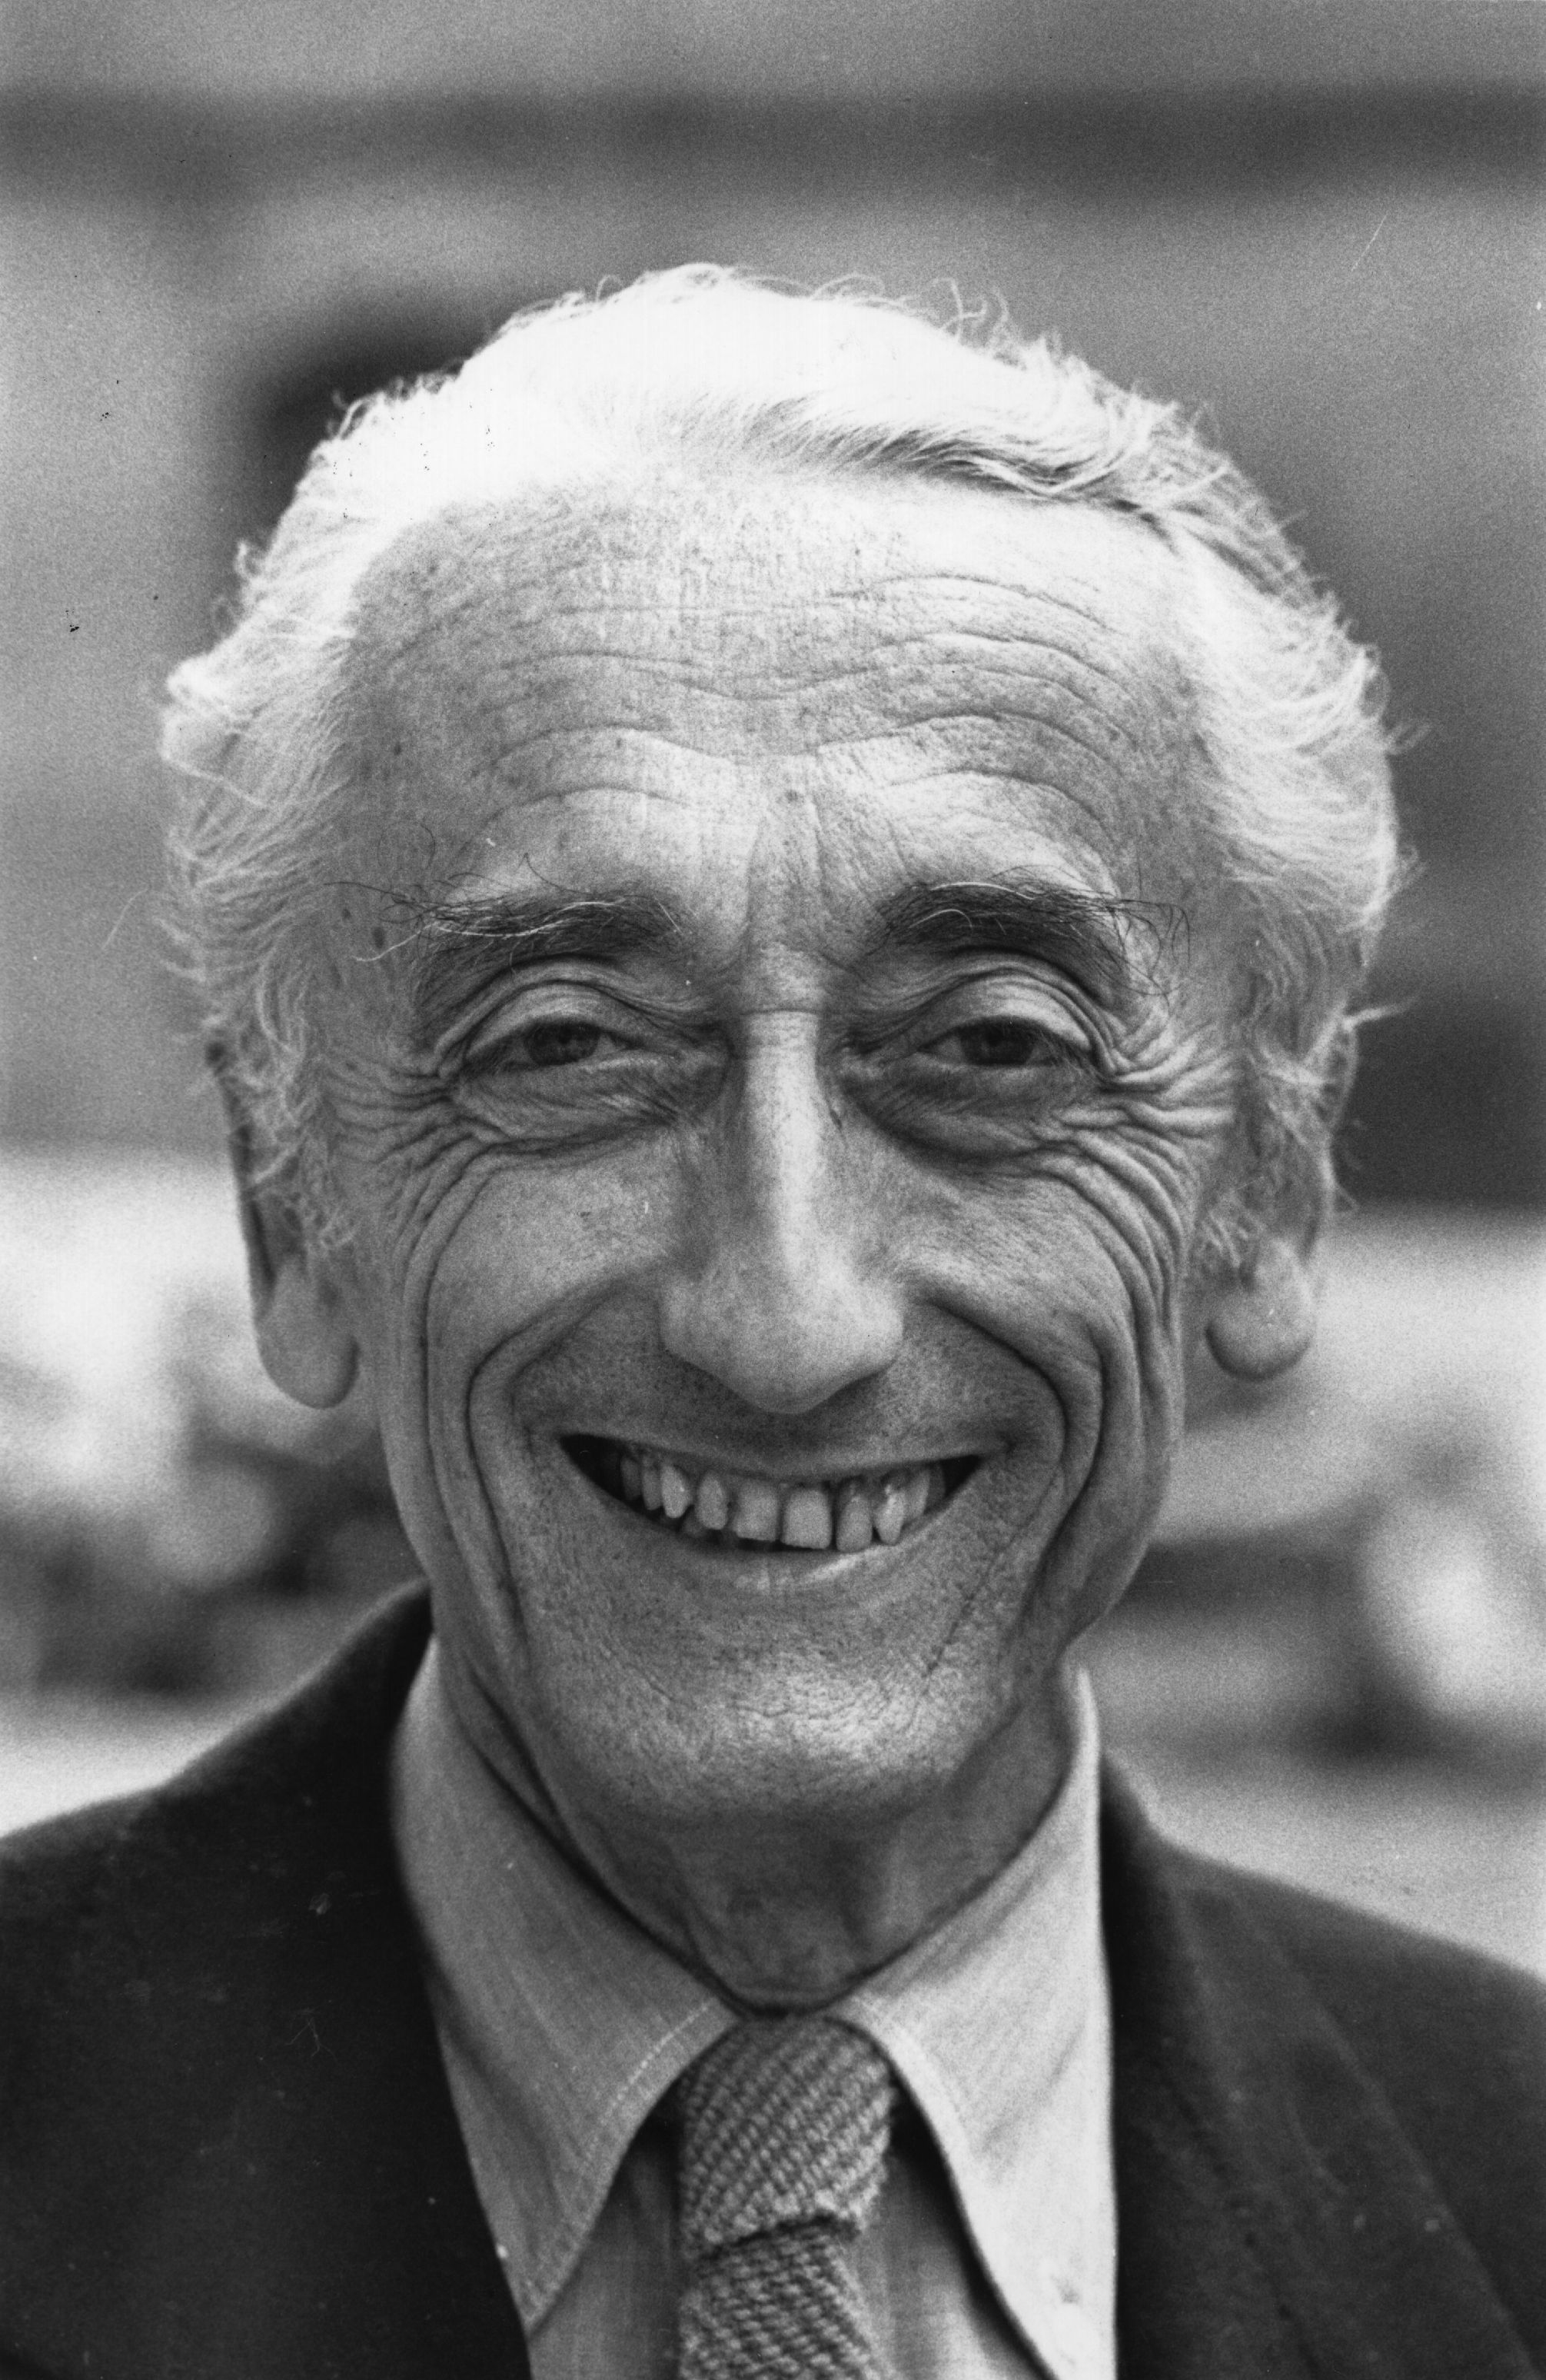 French underwater explorer, photographer, film-maker, author and inventor Jacques Cousteau (1910 - 1997). (Photo by Evening Standard/Getty Images)